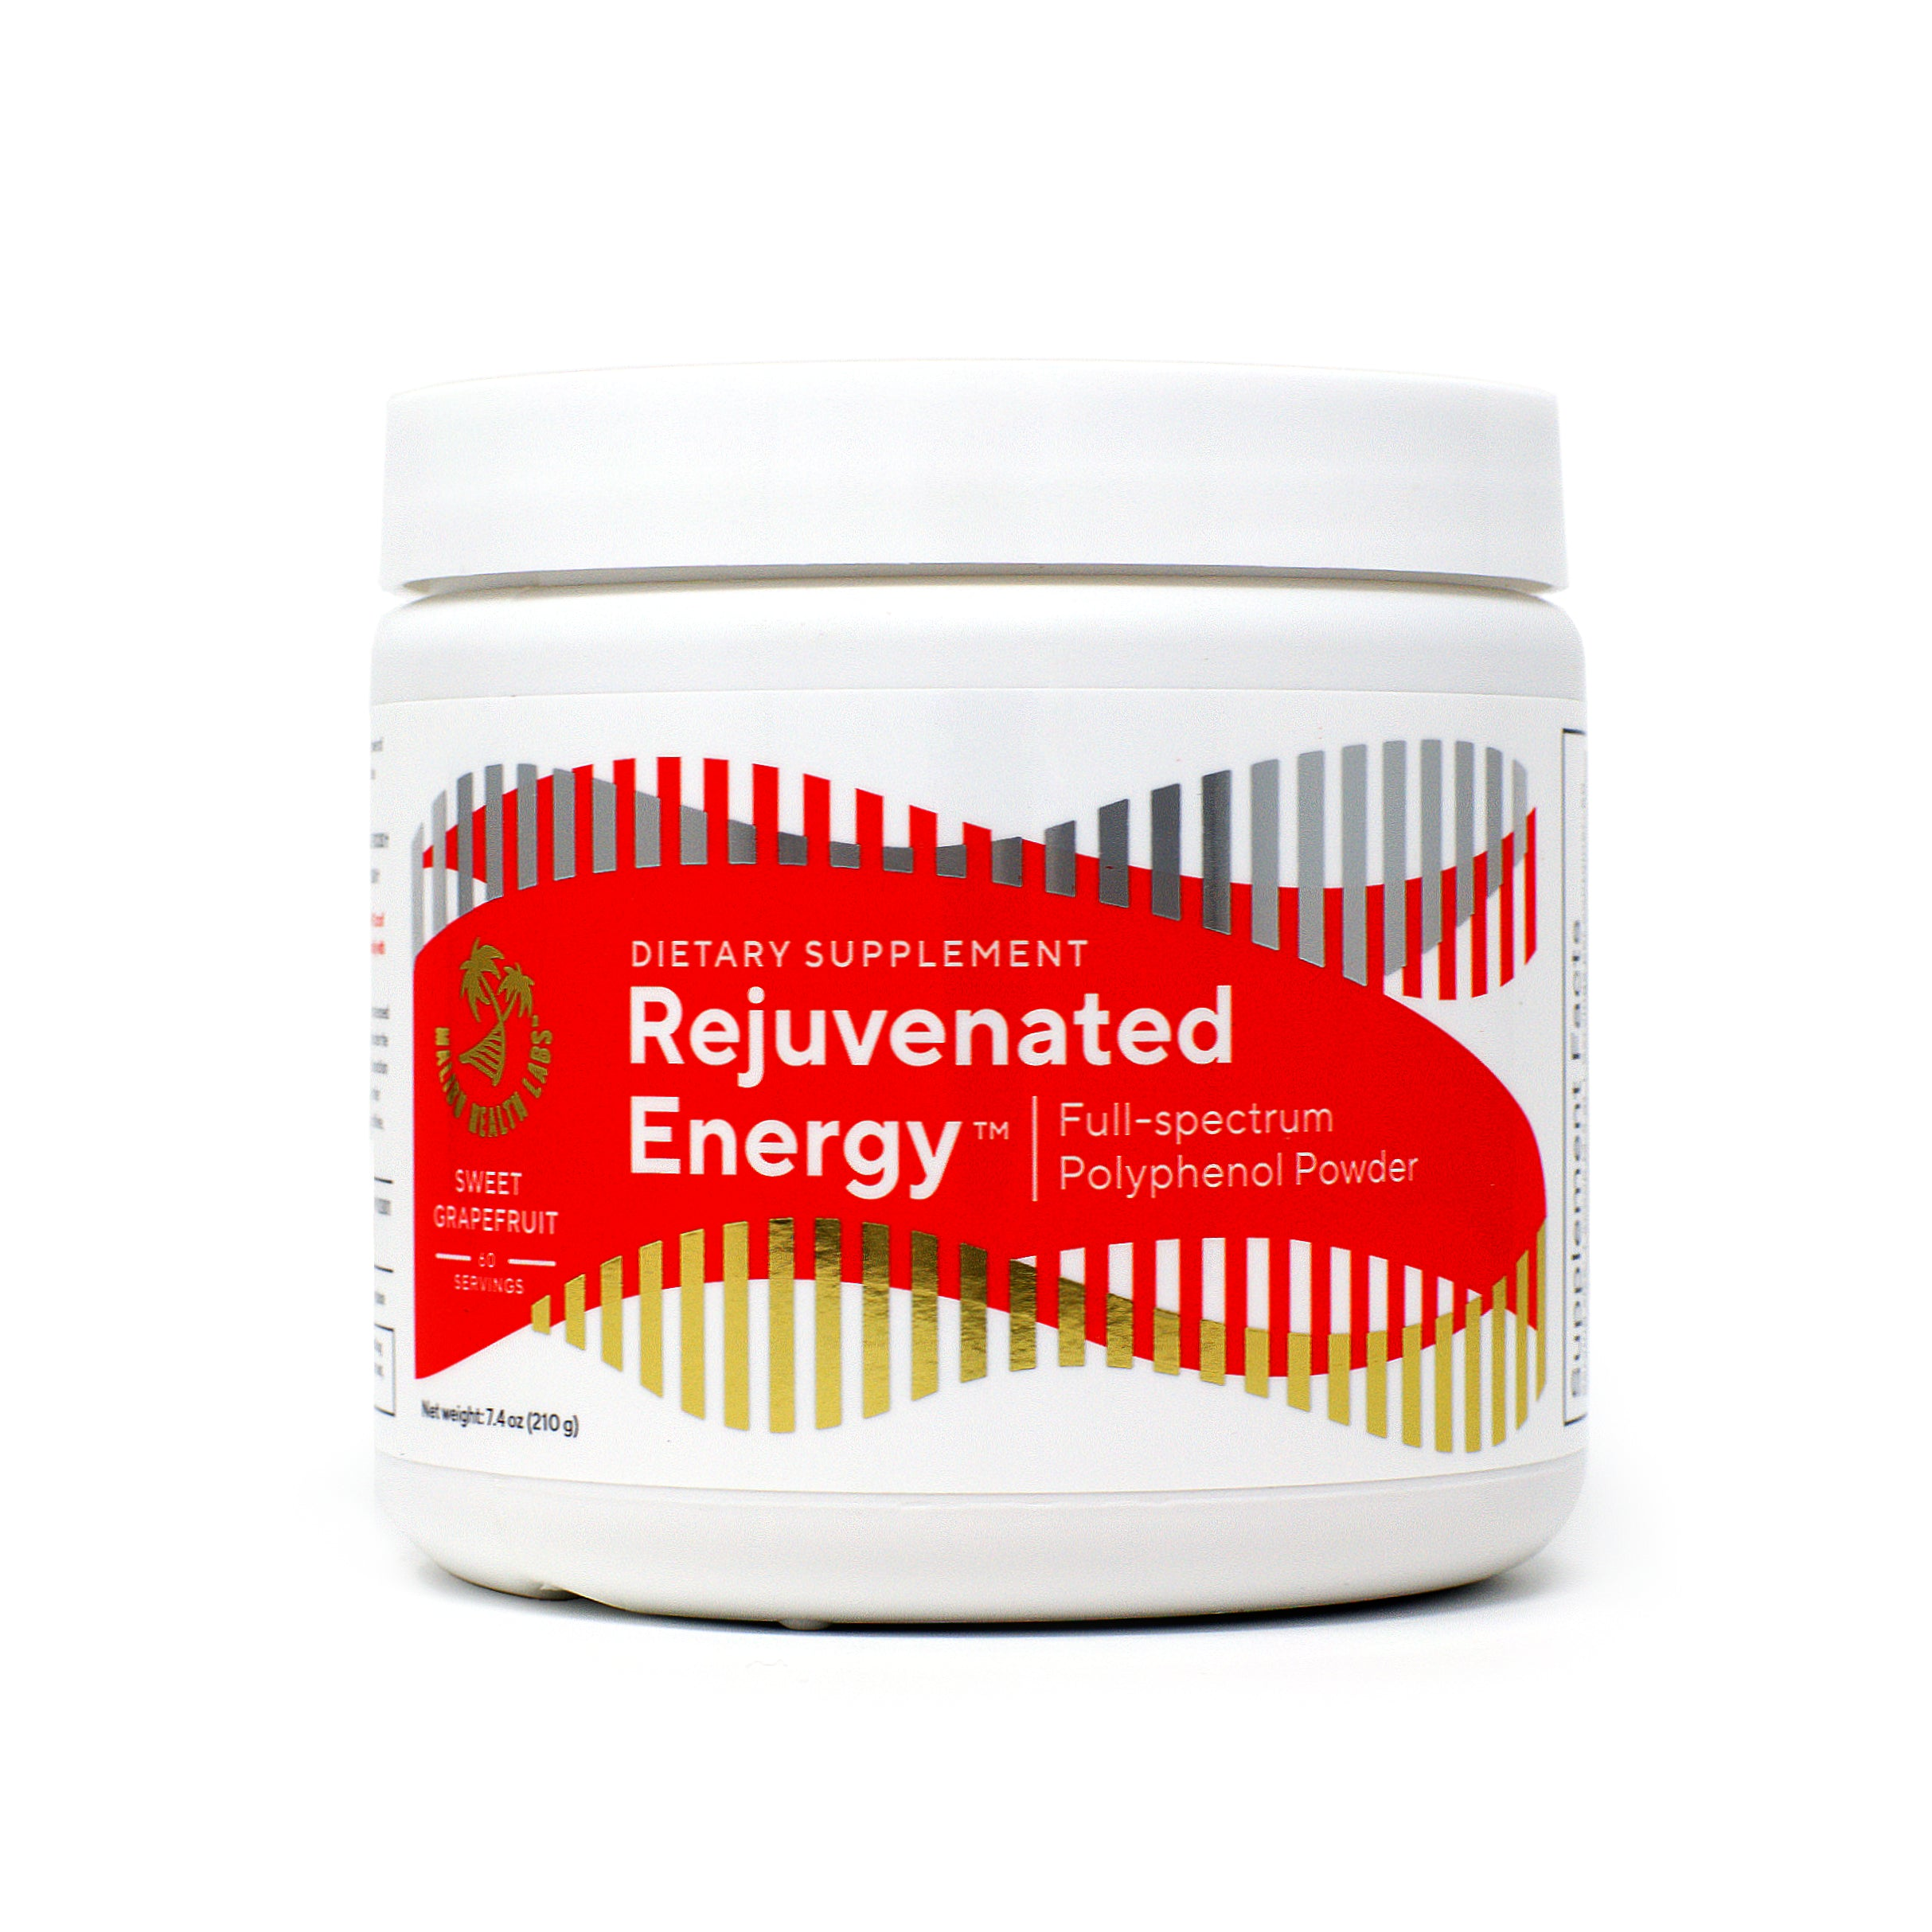 Rejuvenated Energy